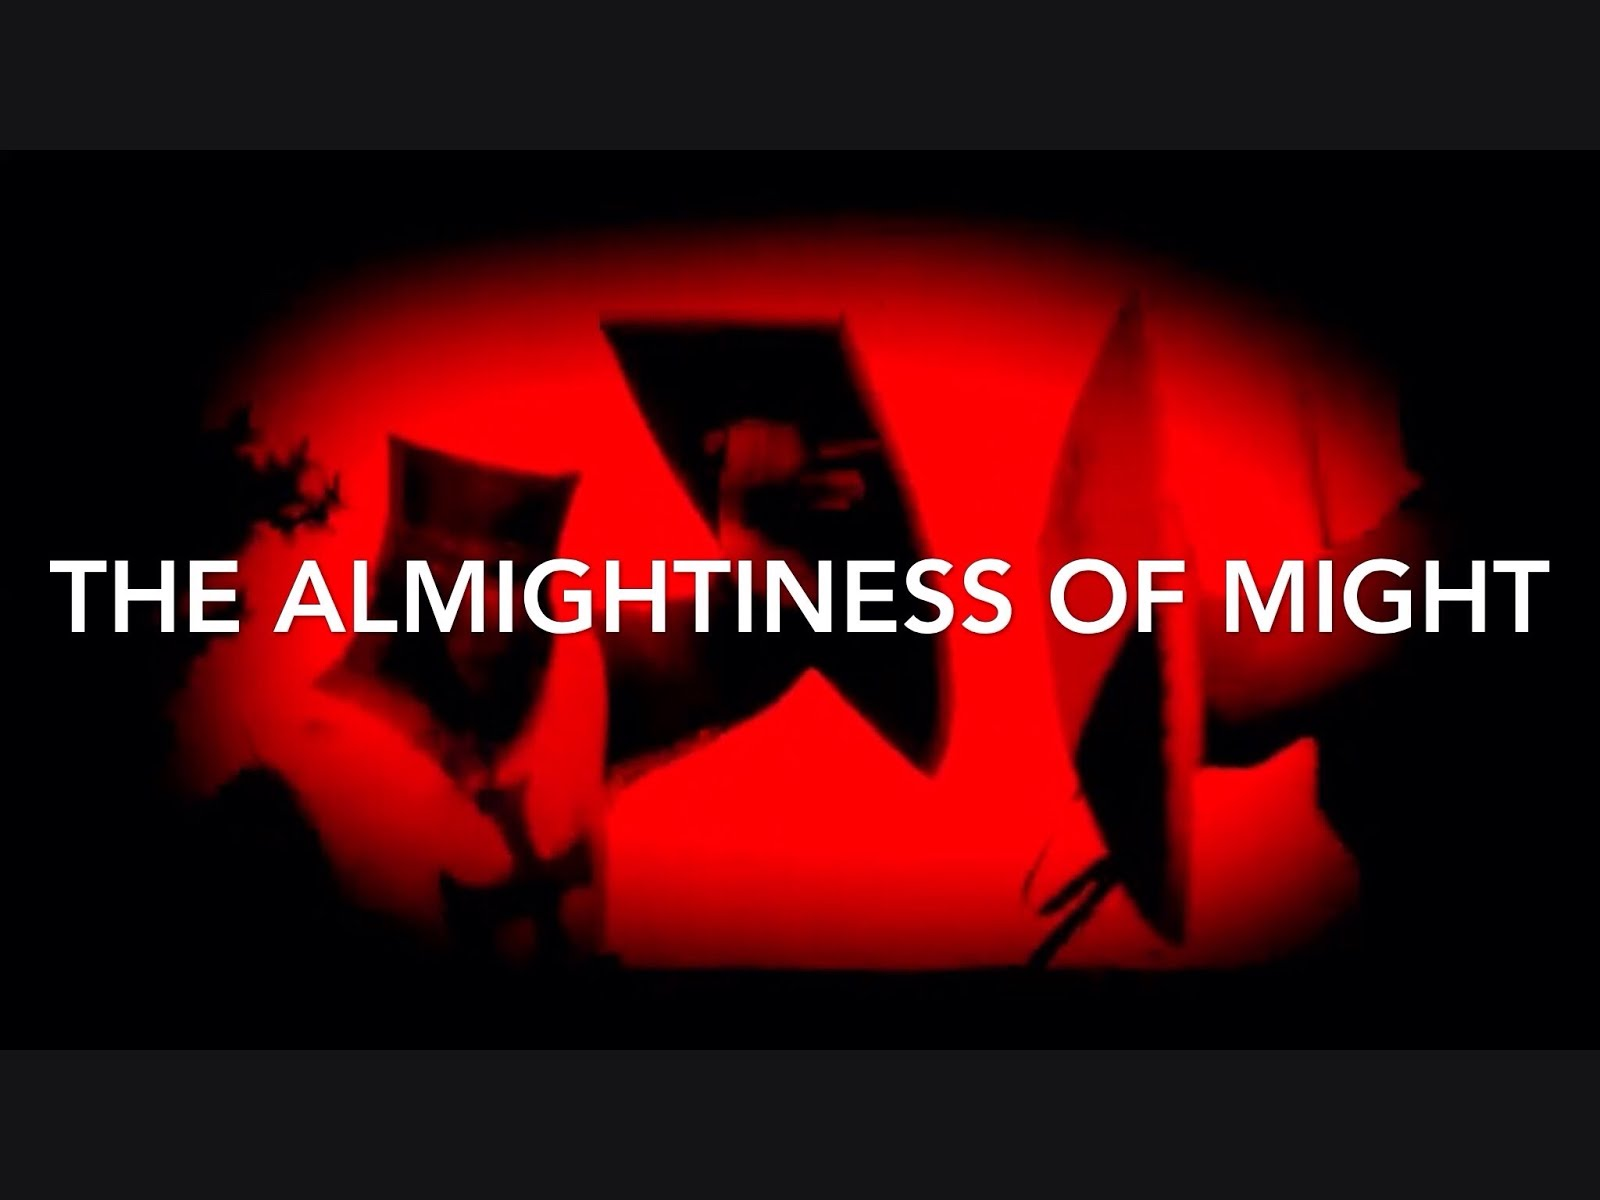 The Almightiness of Might (video)